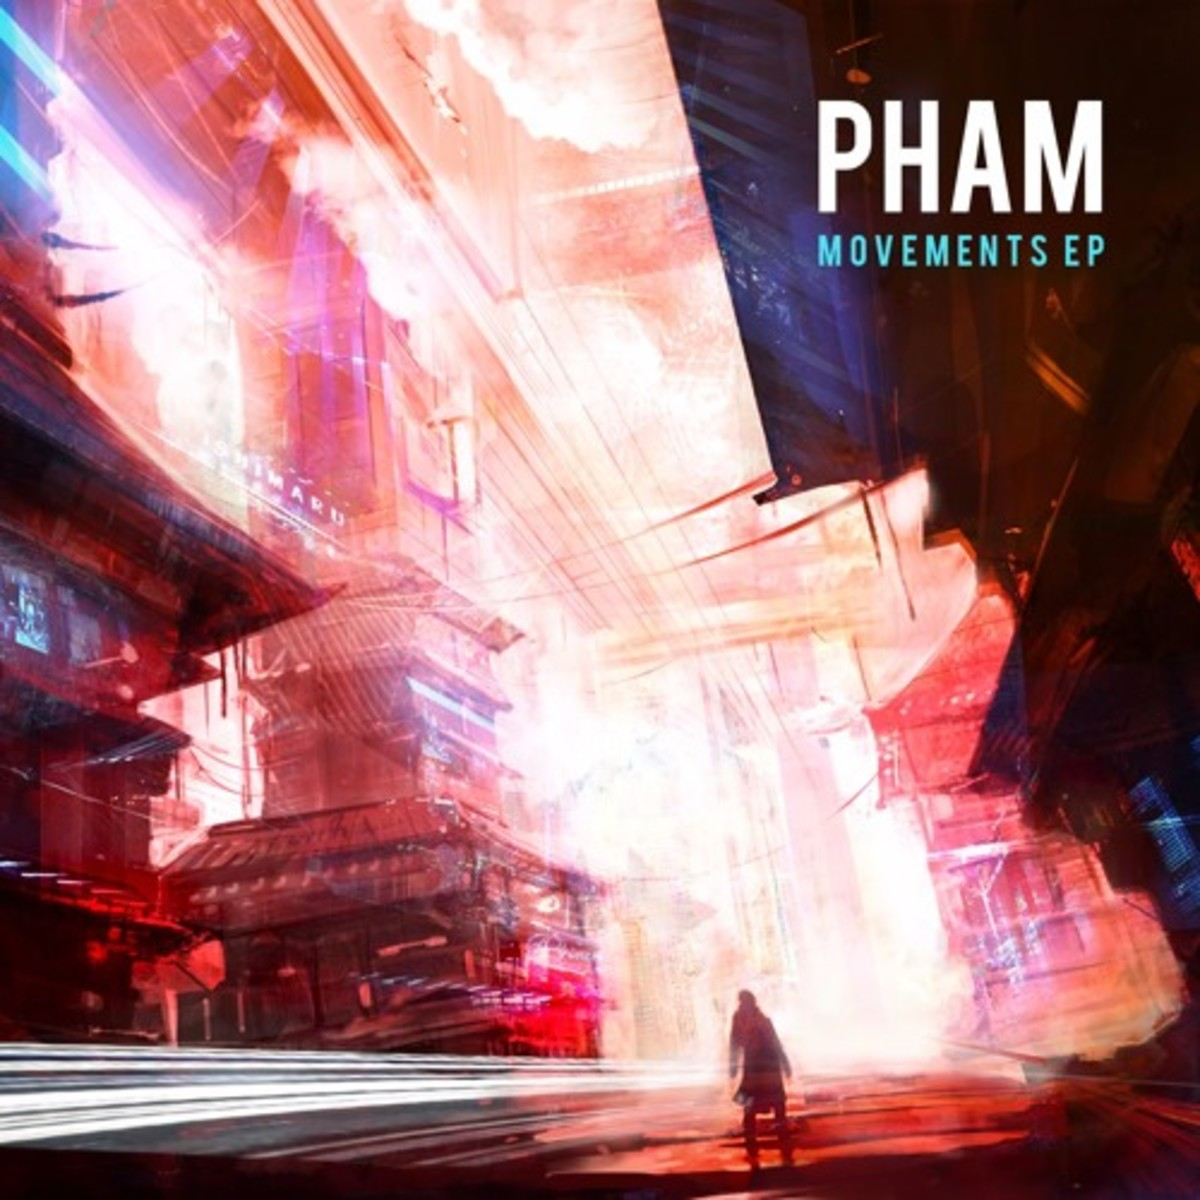 pham-movements-ep.jpg